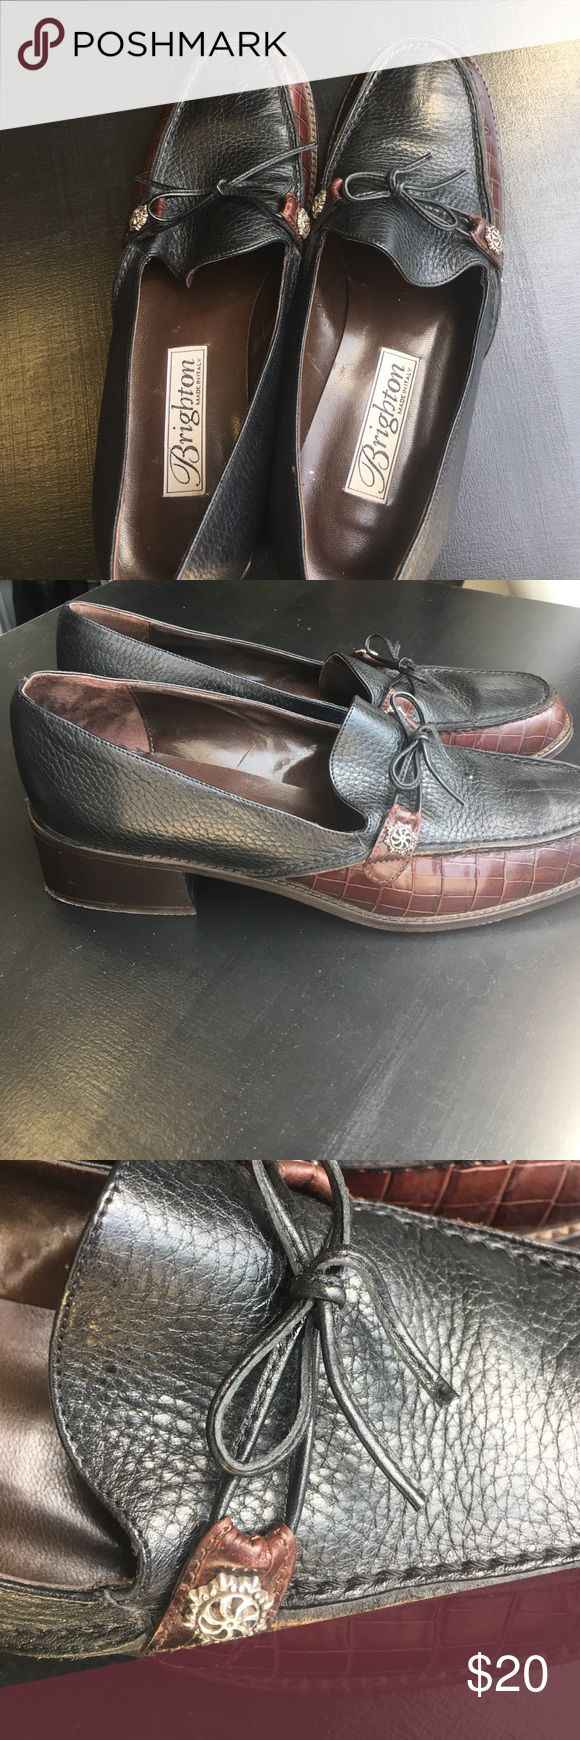 Ladies Brighton Leather Loafers. Gently worn. Size 81/2 Brighten Loaders. Black and Brown leather with front tie.  I only worn a few times as size was a little large. Purchased at the Brighton  store in Scottsdale AZ. Brighton Shoes Flats & Loafers